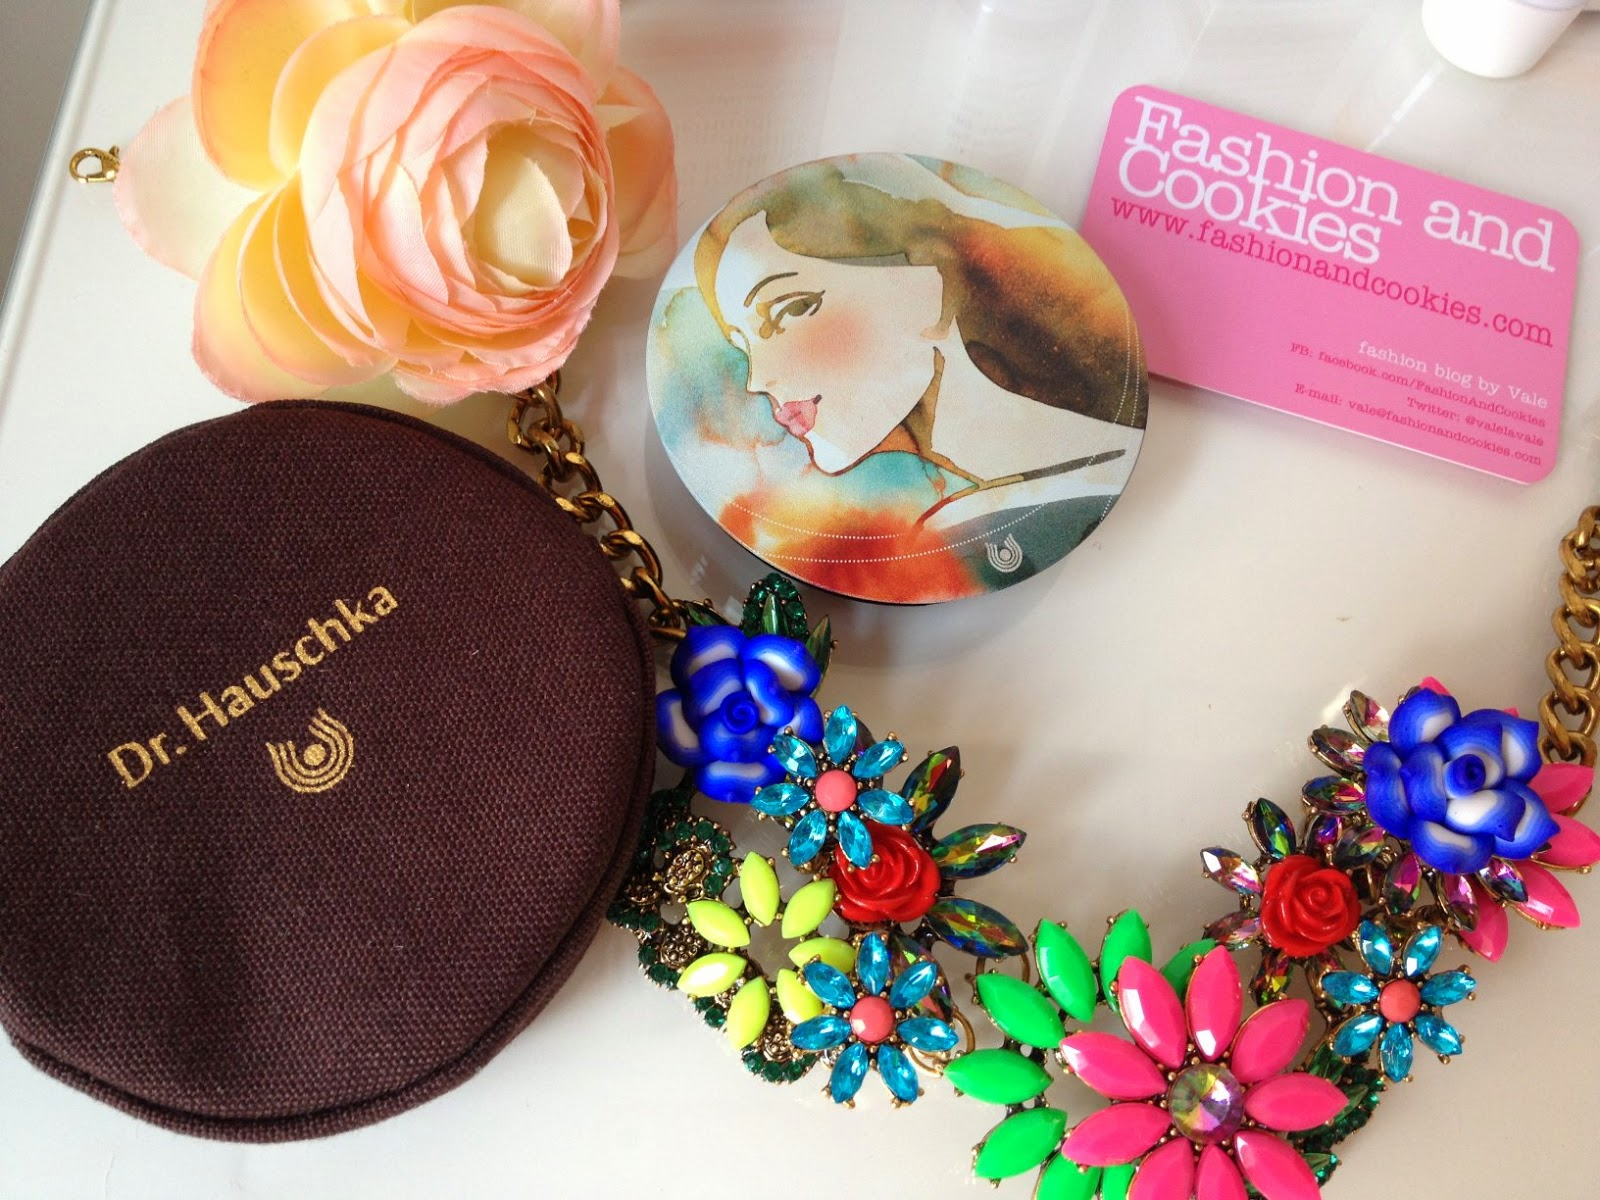 Dr Hauschka, terra abbronzante limited edition, bronzing powder, Fashion and Cookies, fashion blogger